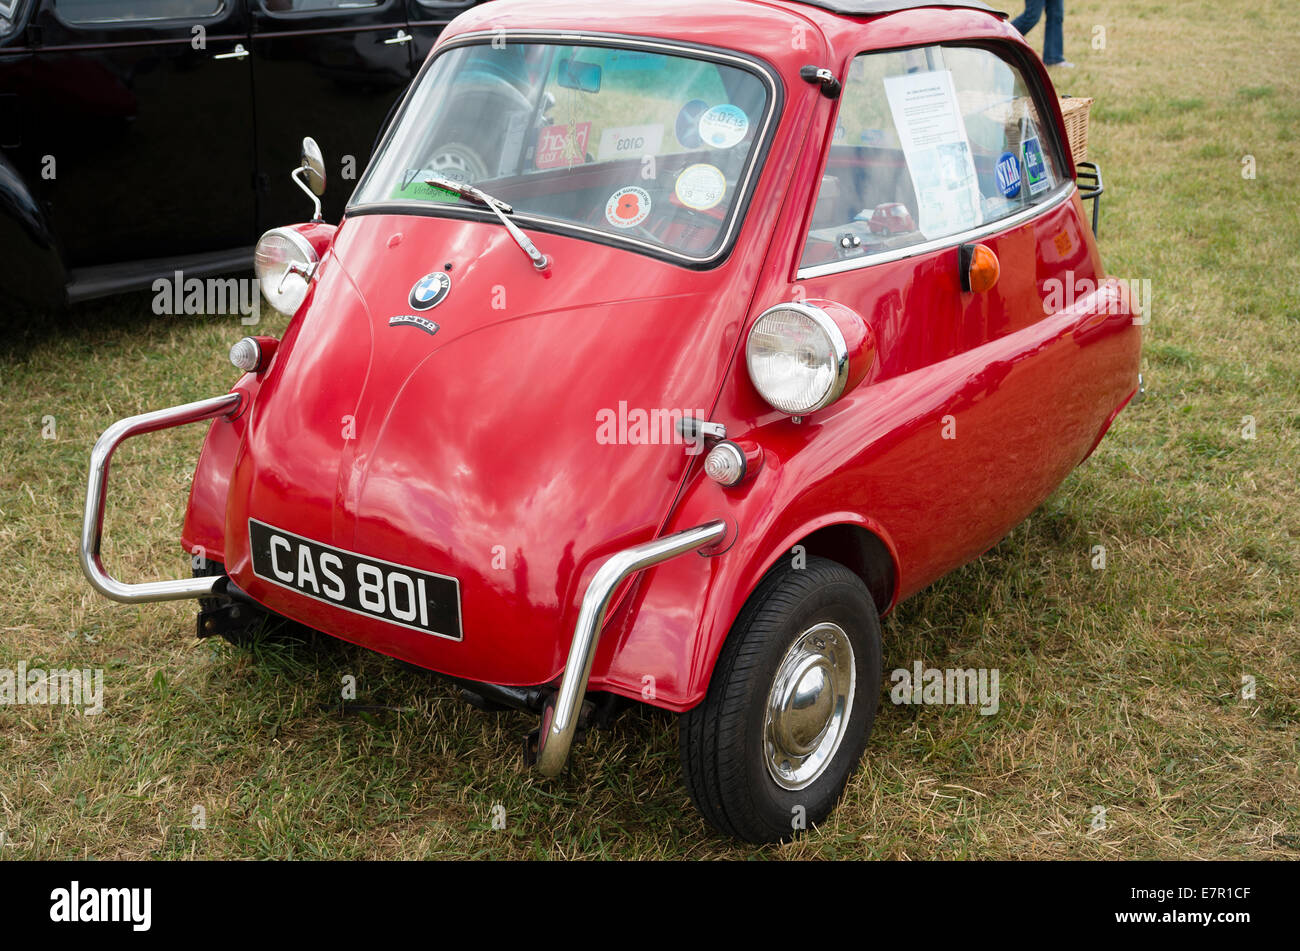 Old Bmw Isetta Bubble Car From 1950s On Show In Uk Stock